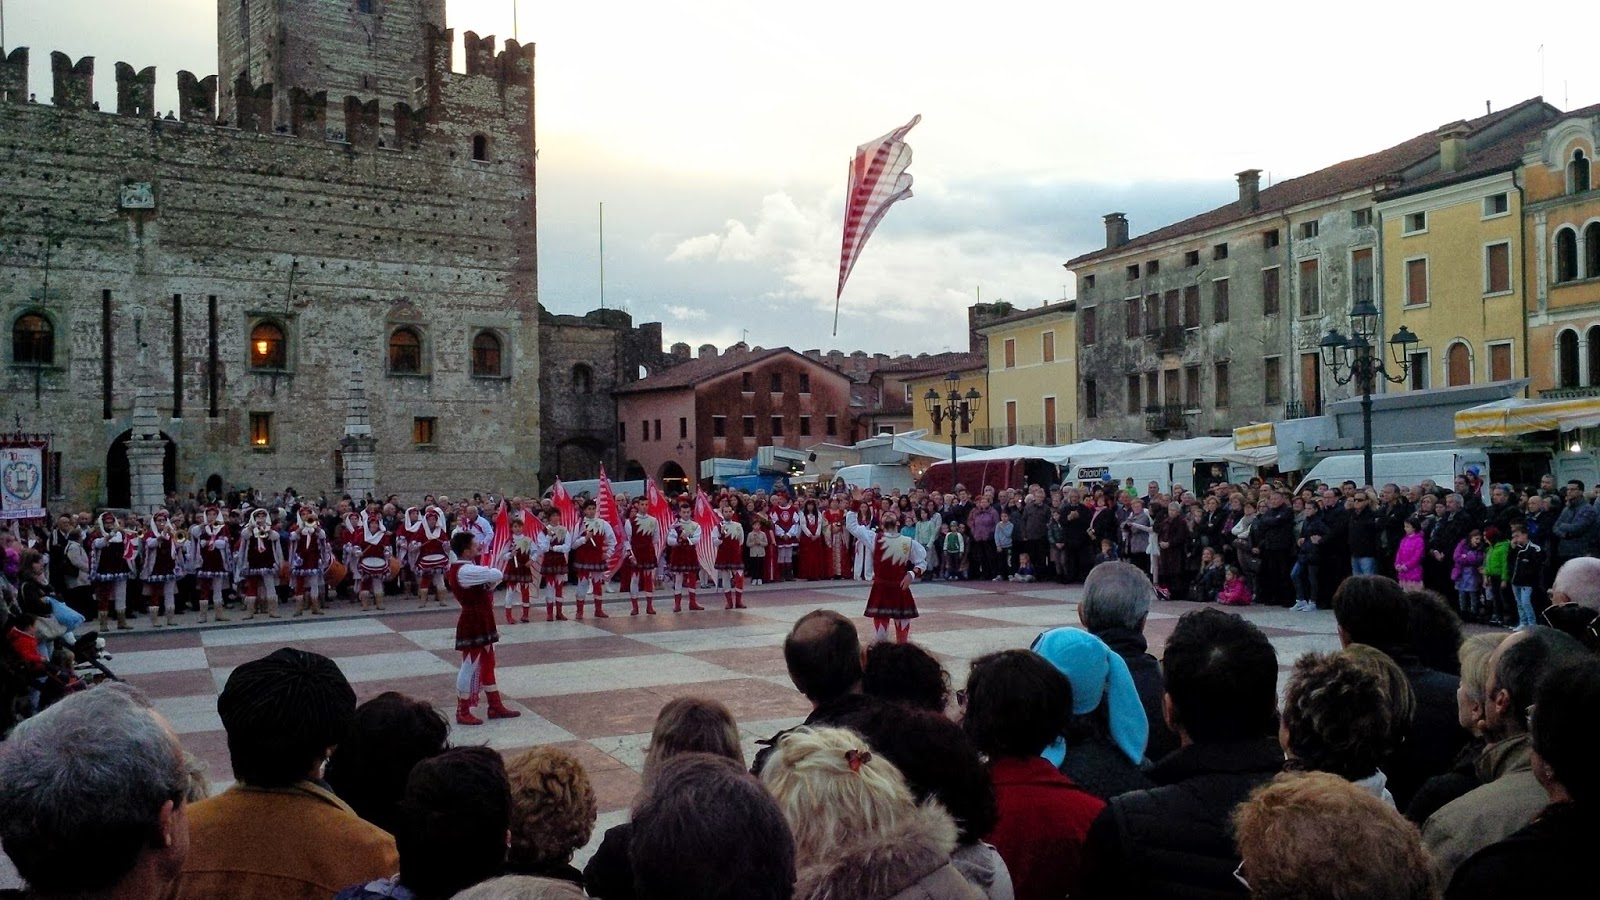 Flag dancing on the chessboard square in Marostica